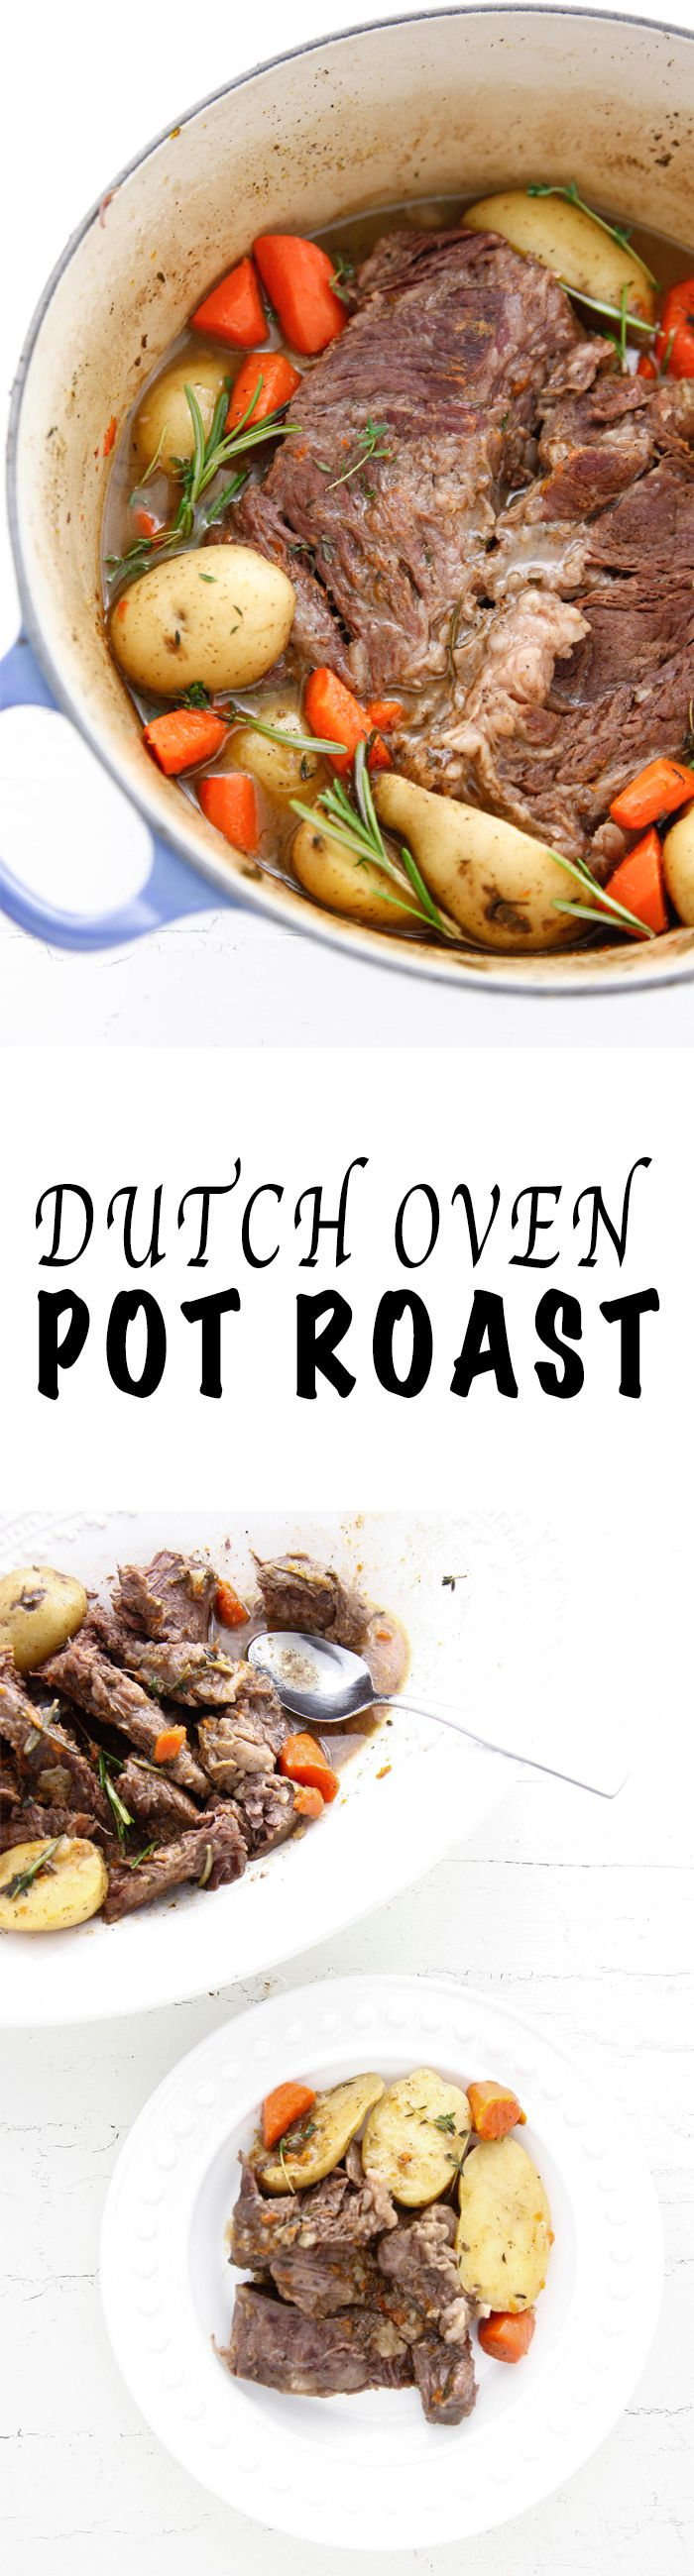 Make an easy dinner with my Dutch Oven Pot Roast recipe! via @thebrooklyncook